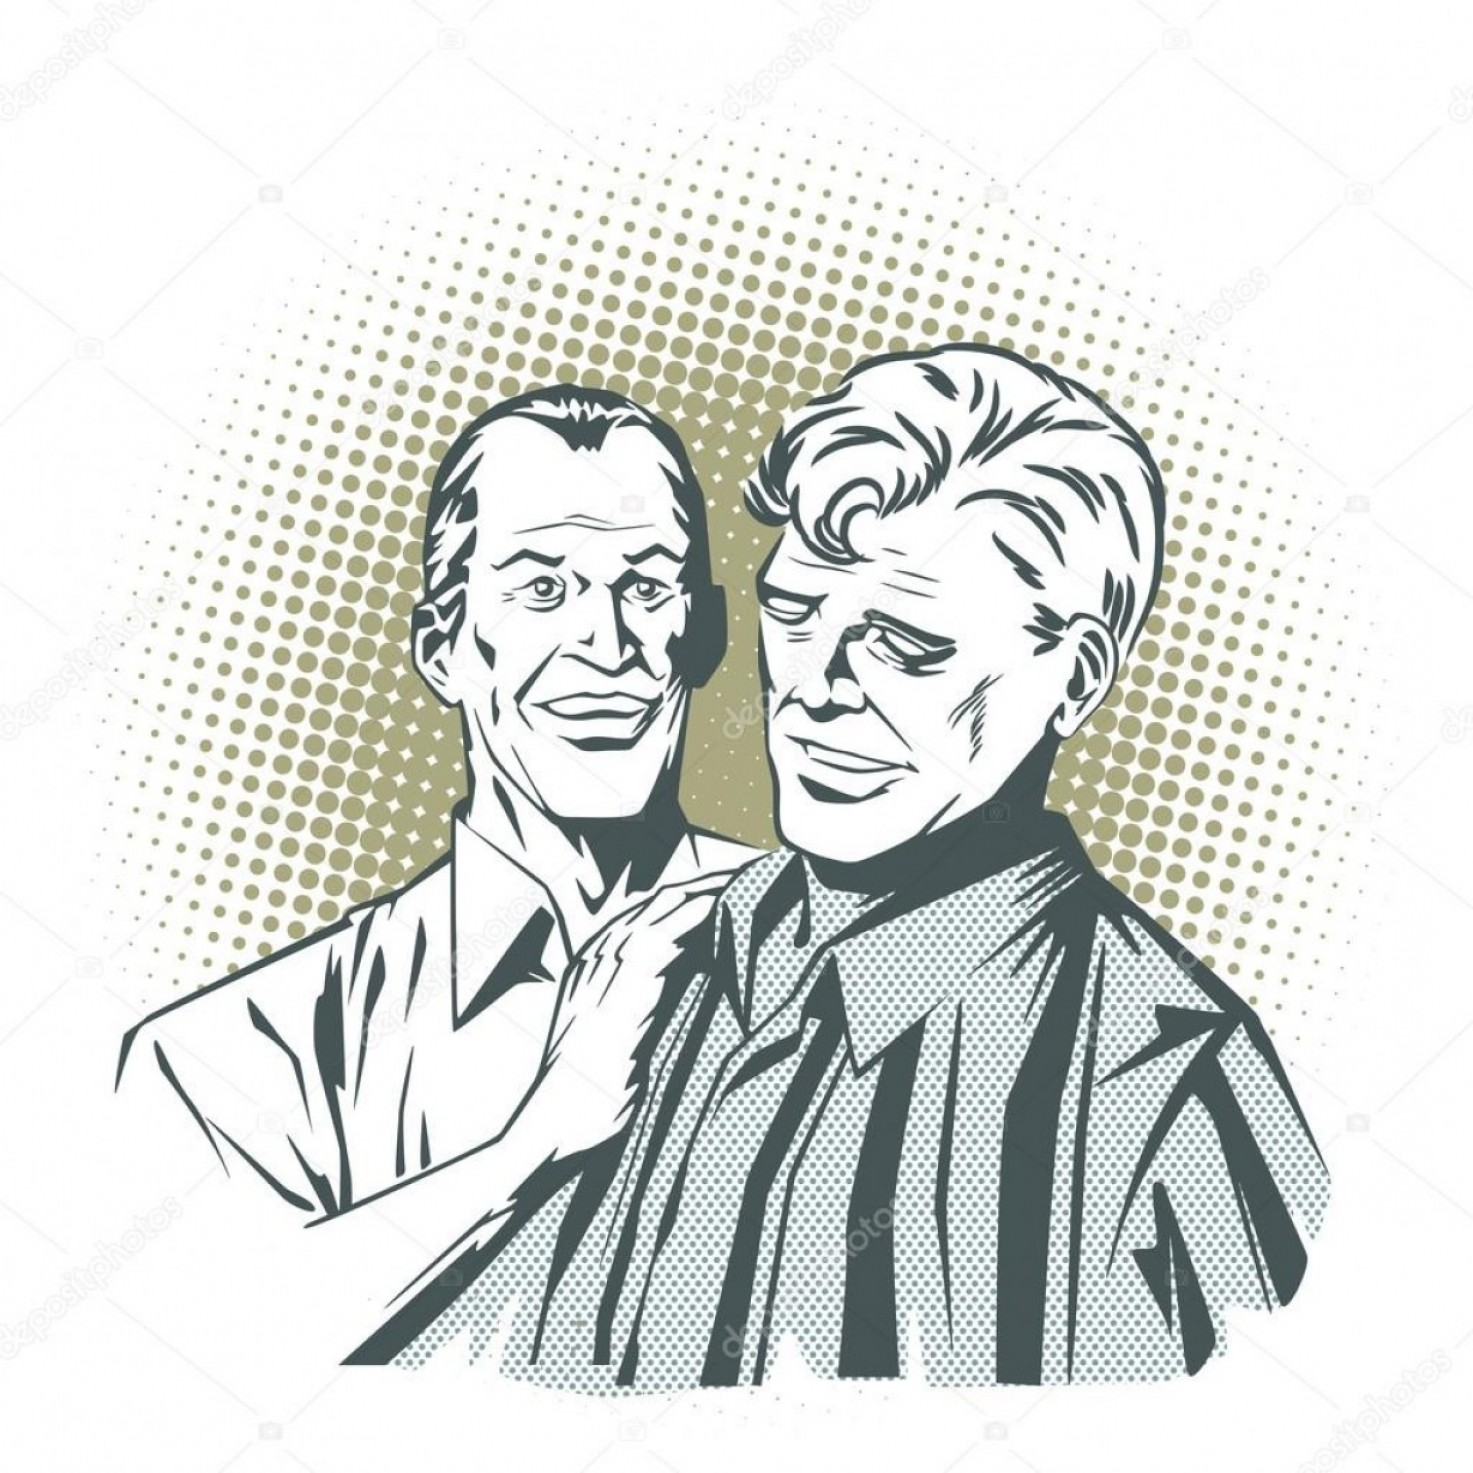 White Retro Vector People: Stock Illustration People In Retro Style Pop